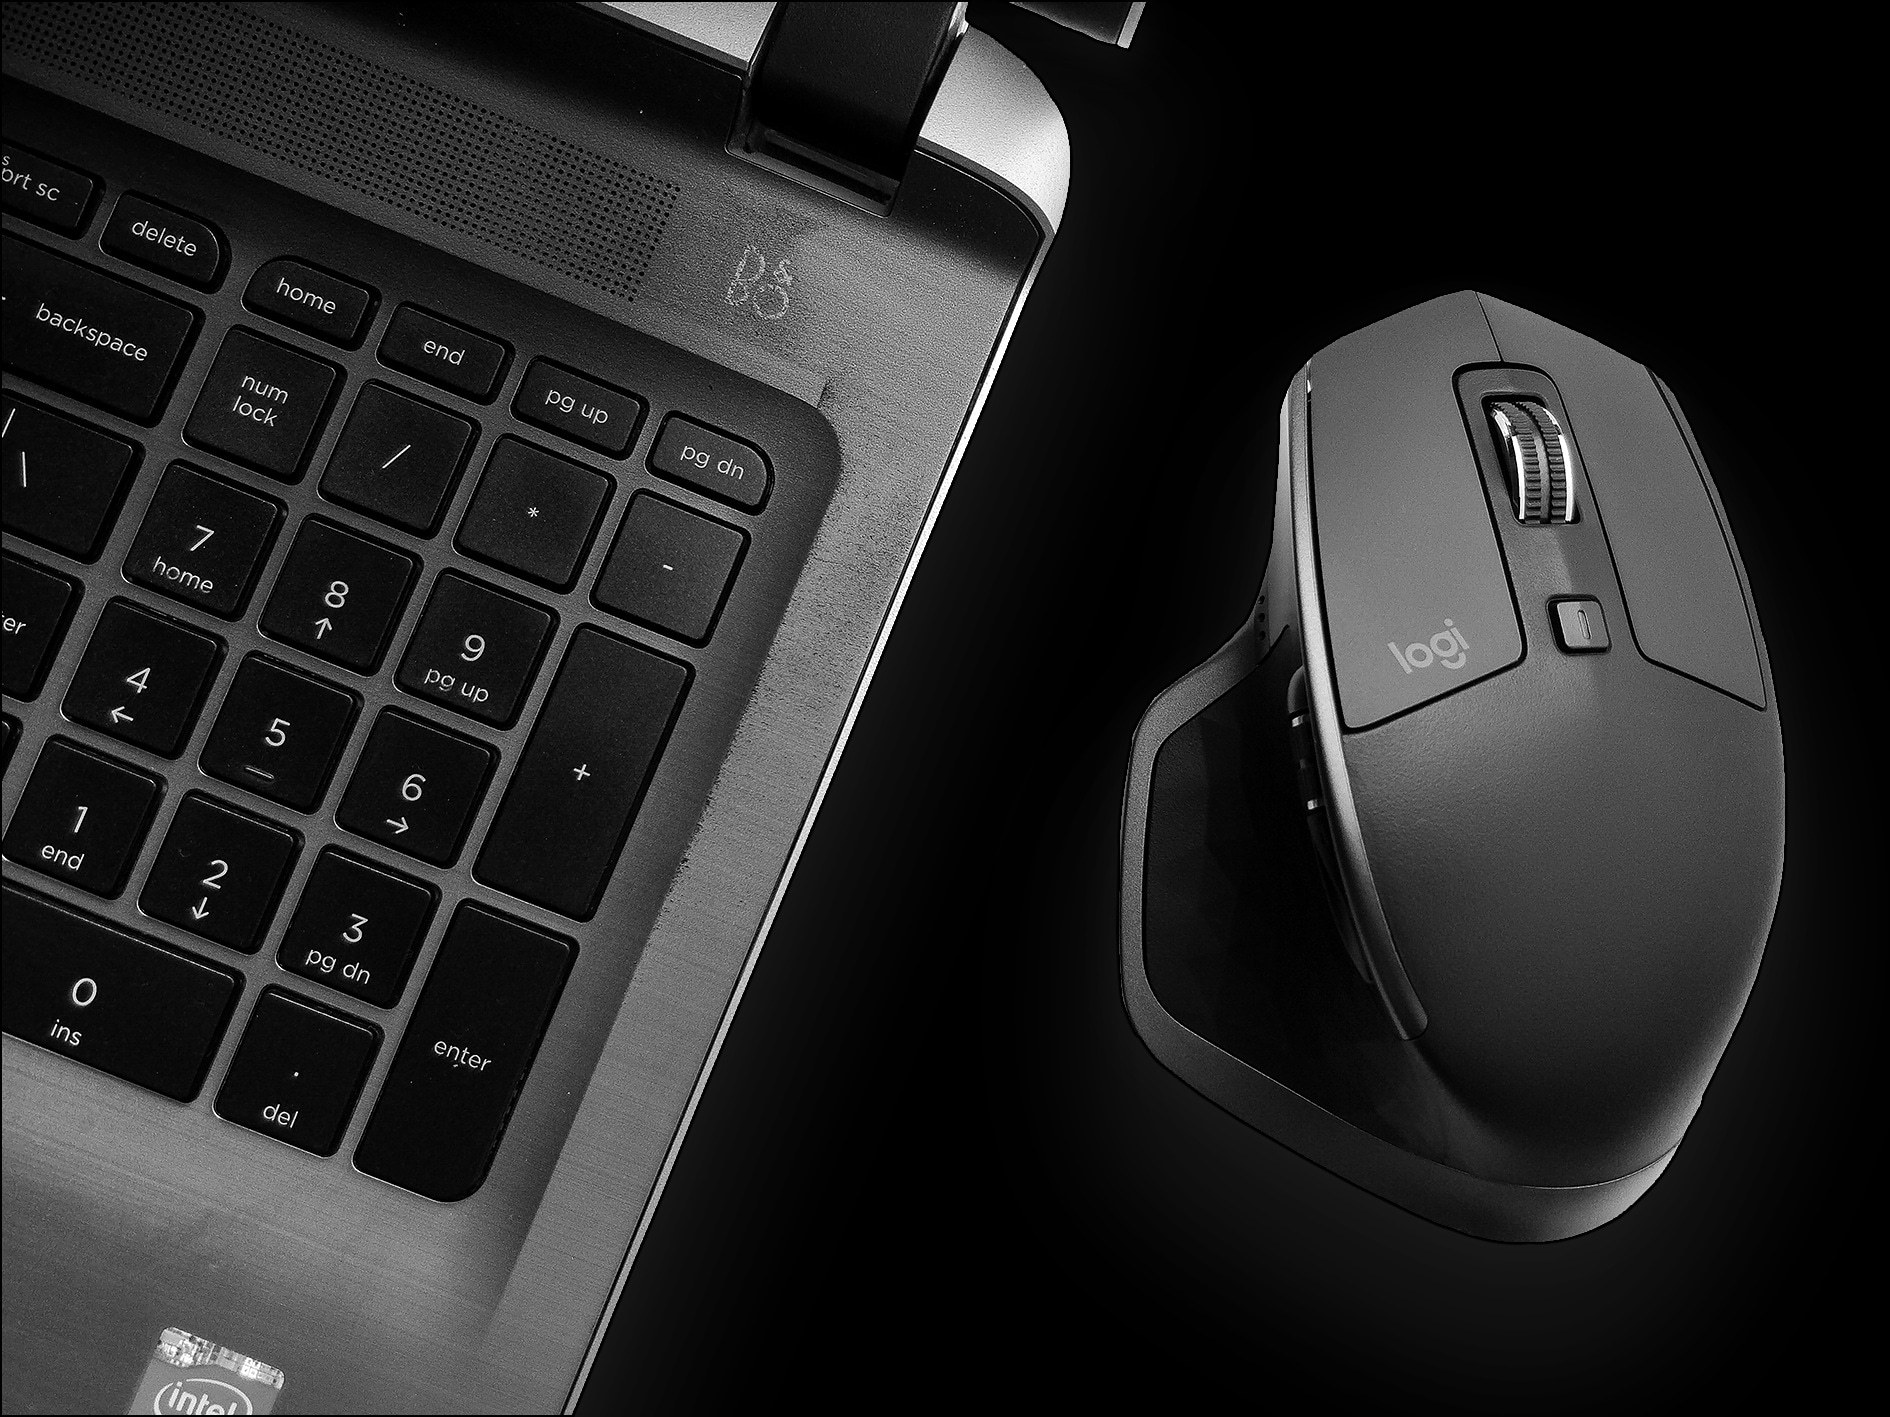 Dell Laptop and Logitech MX Master 2S - Captured Using A Smartphone